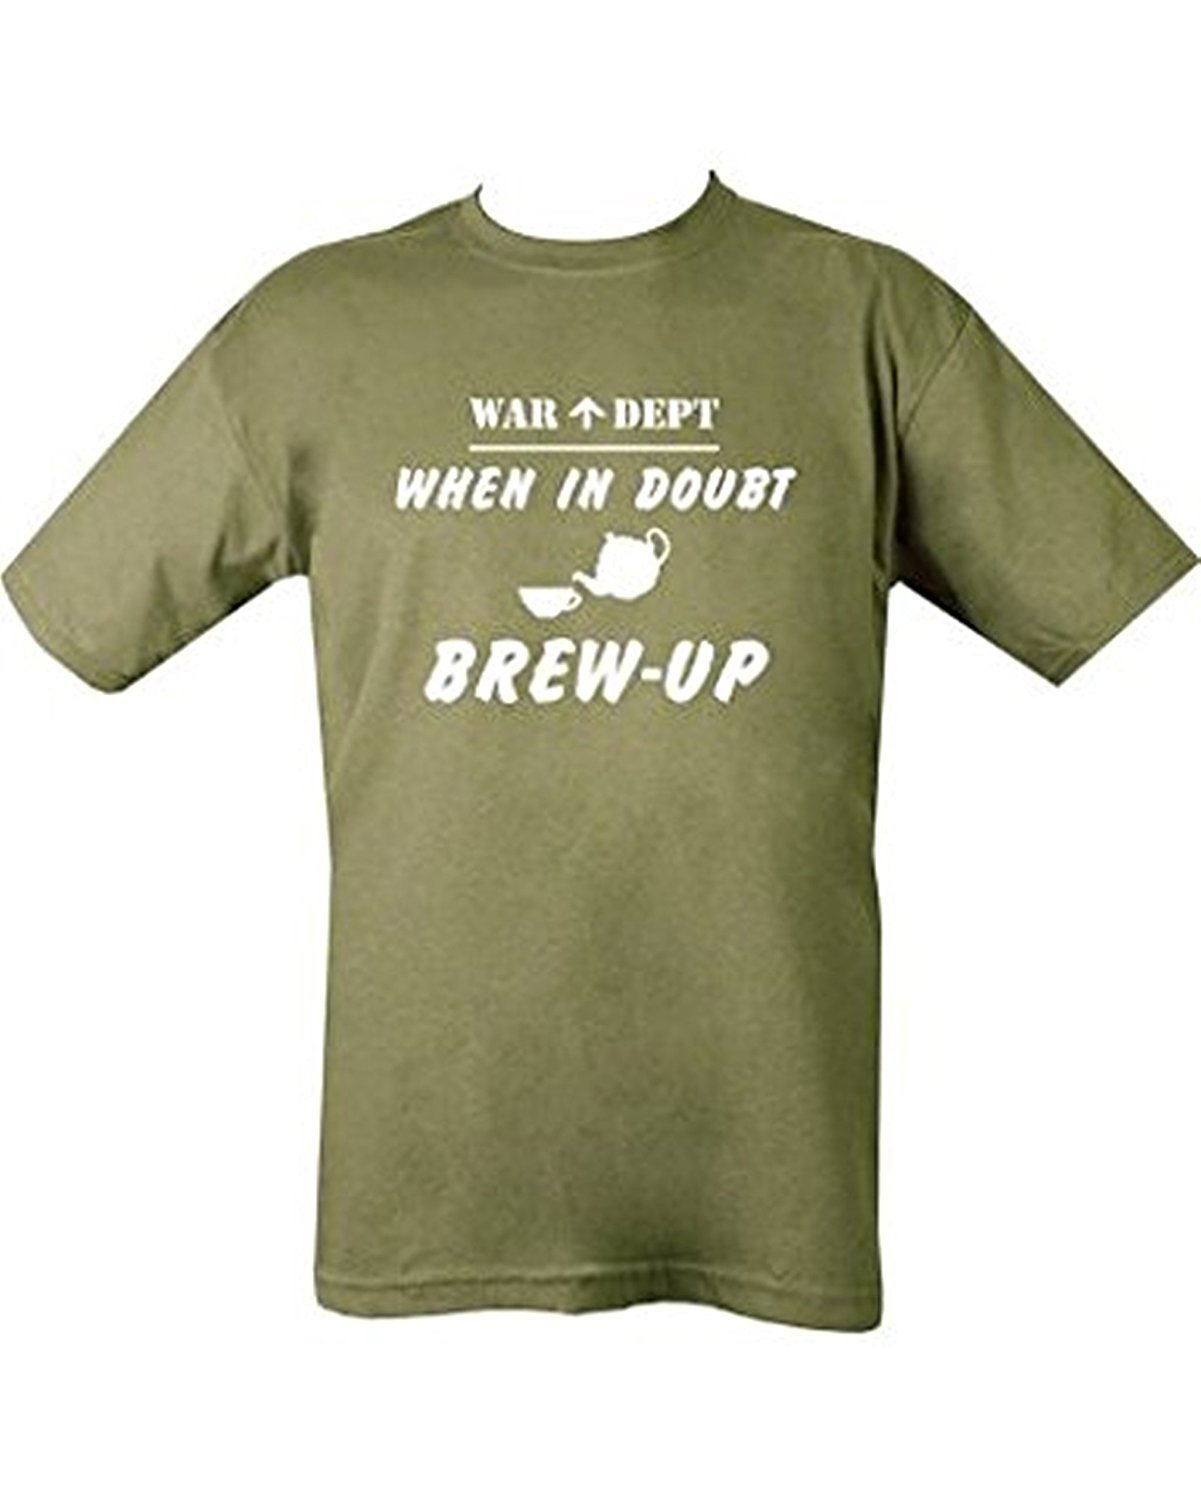 Kombat Mens Military Printed Army Combat US When In Doubt Brew Up T-shirt Tshirt War Dept (XL = Chest 110-112cm or 46-48 inch) - Bear Essentials Clothing Company